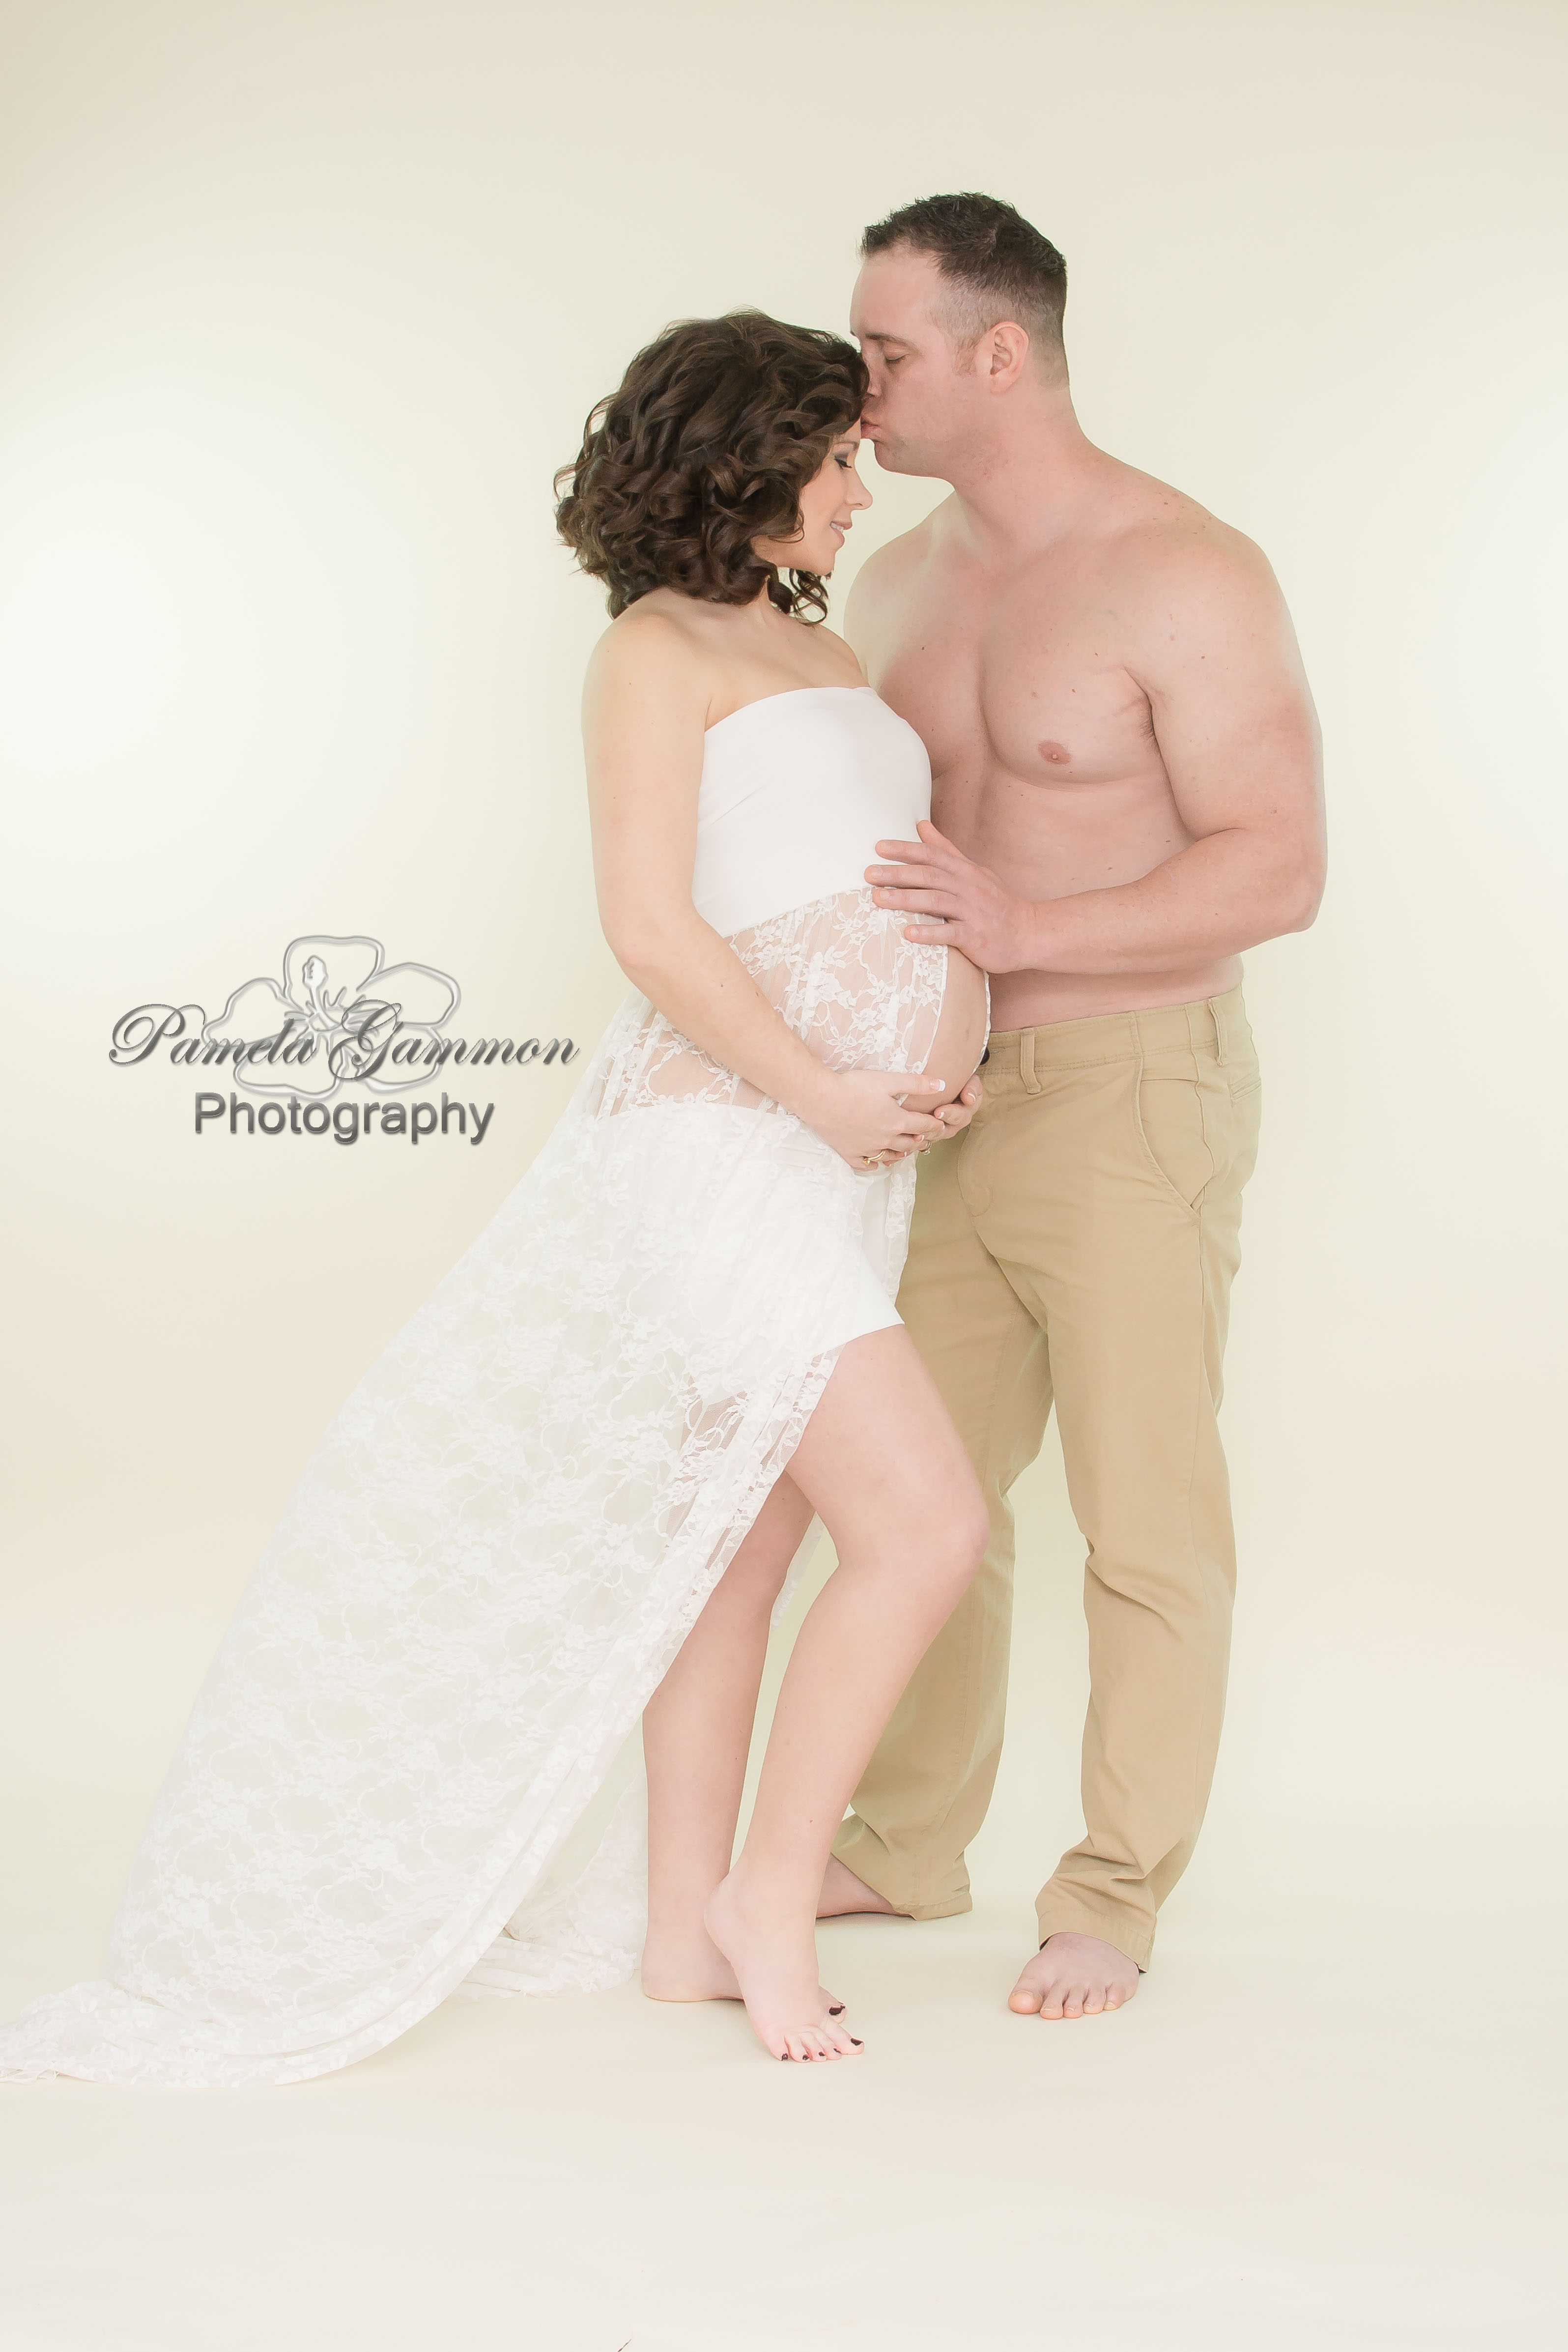 Portsmouth Ohio Maternity Photography